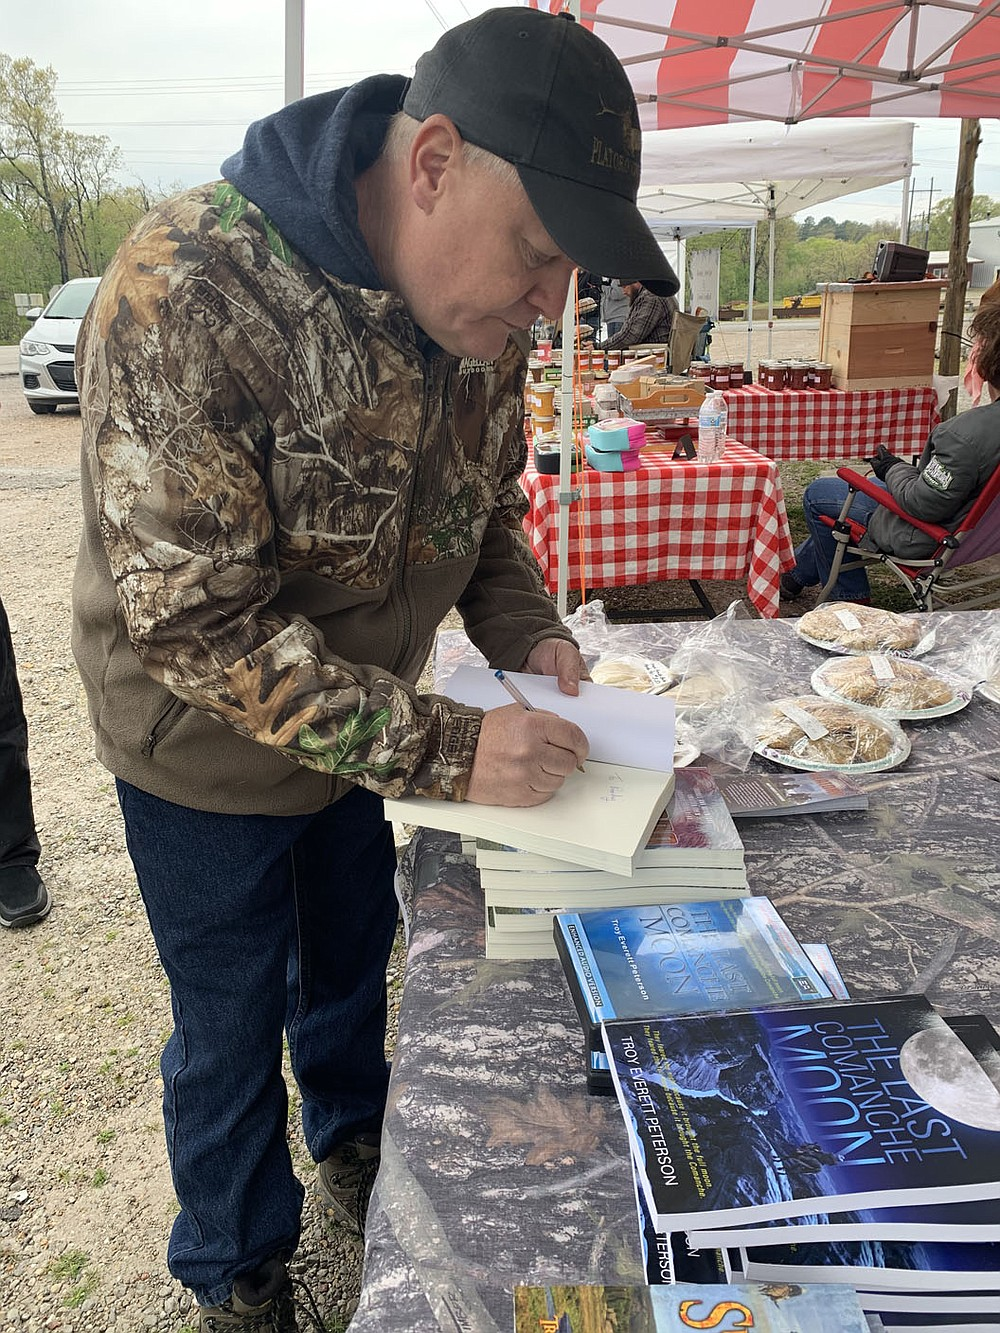 SALLY CARROLL/SPECIAL TO MCDONALD COUNTY PRESS Author Troy Everett Peterson signs a book for a customer at a recent Farmers Market event at Sim's Corner. Peterson's books also are available online on Amazon and Barnes & Noble.